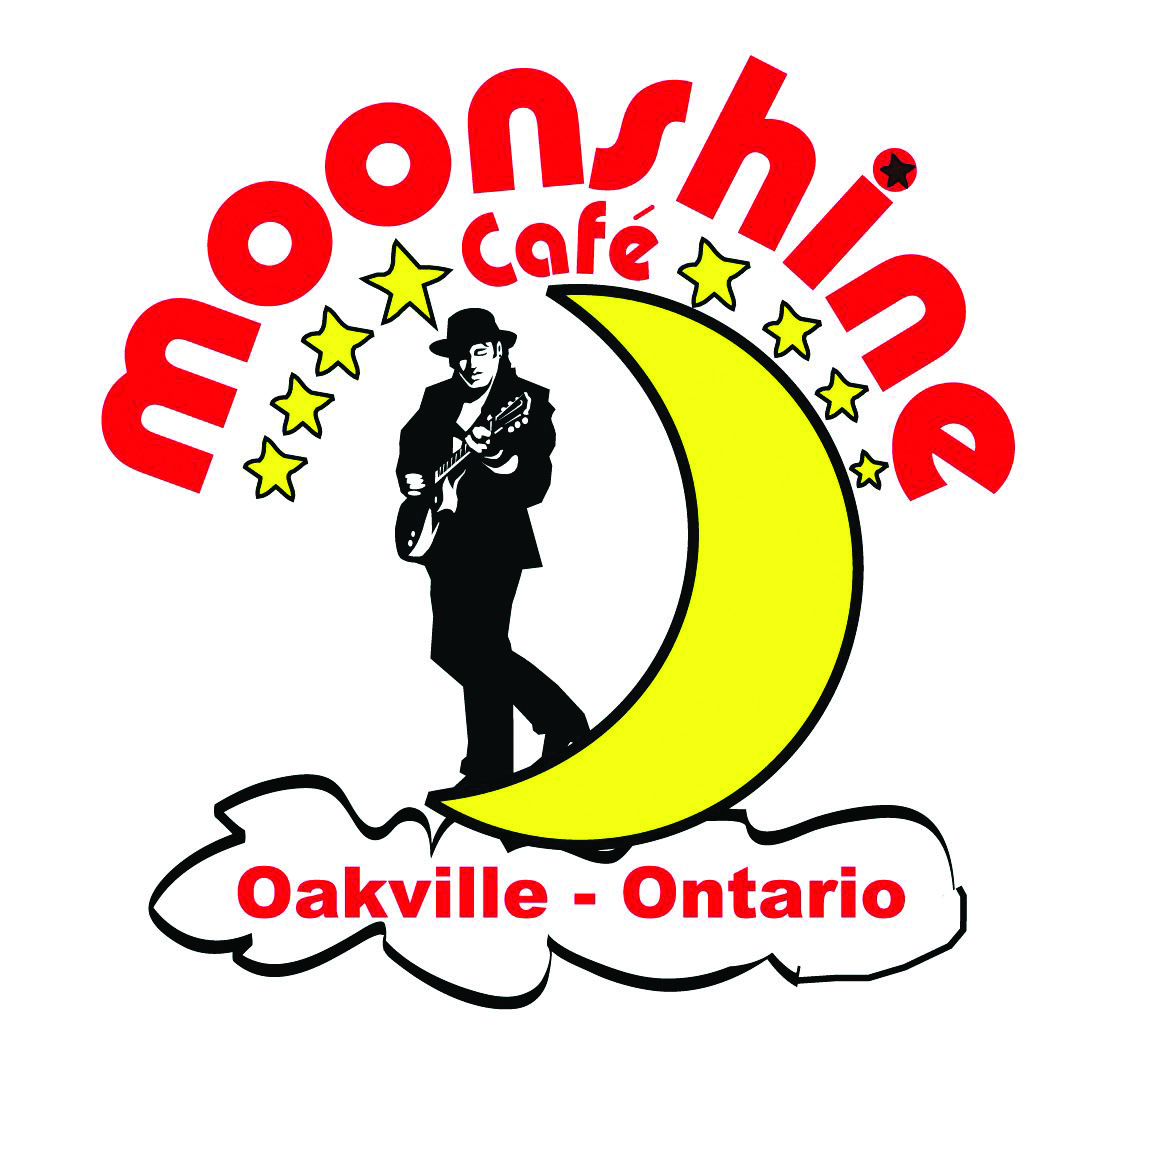 The Moonshine Cafe is Oakville's first and primary music venue since 2003, hosting some of the acts in Canada.    Located at 137 Kerr St in Oakville, Ont.    Visit www.TheMoonshineCafe.com to see their events calendar, pics, or just drop in for a beer and hear great music!